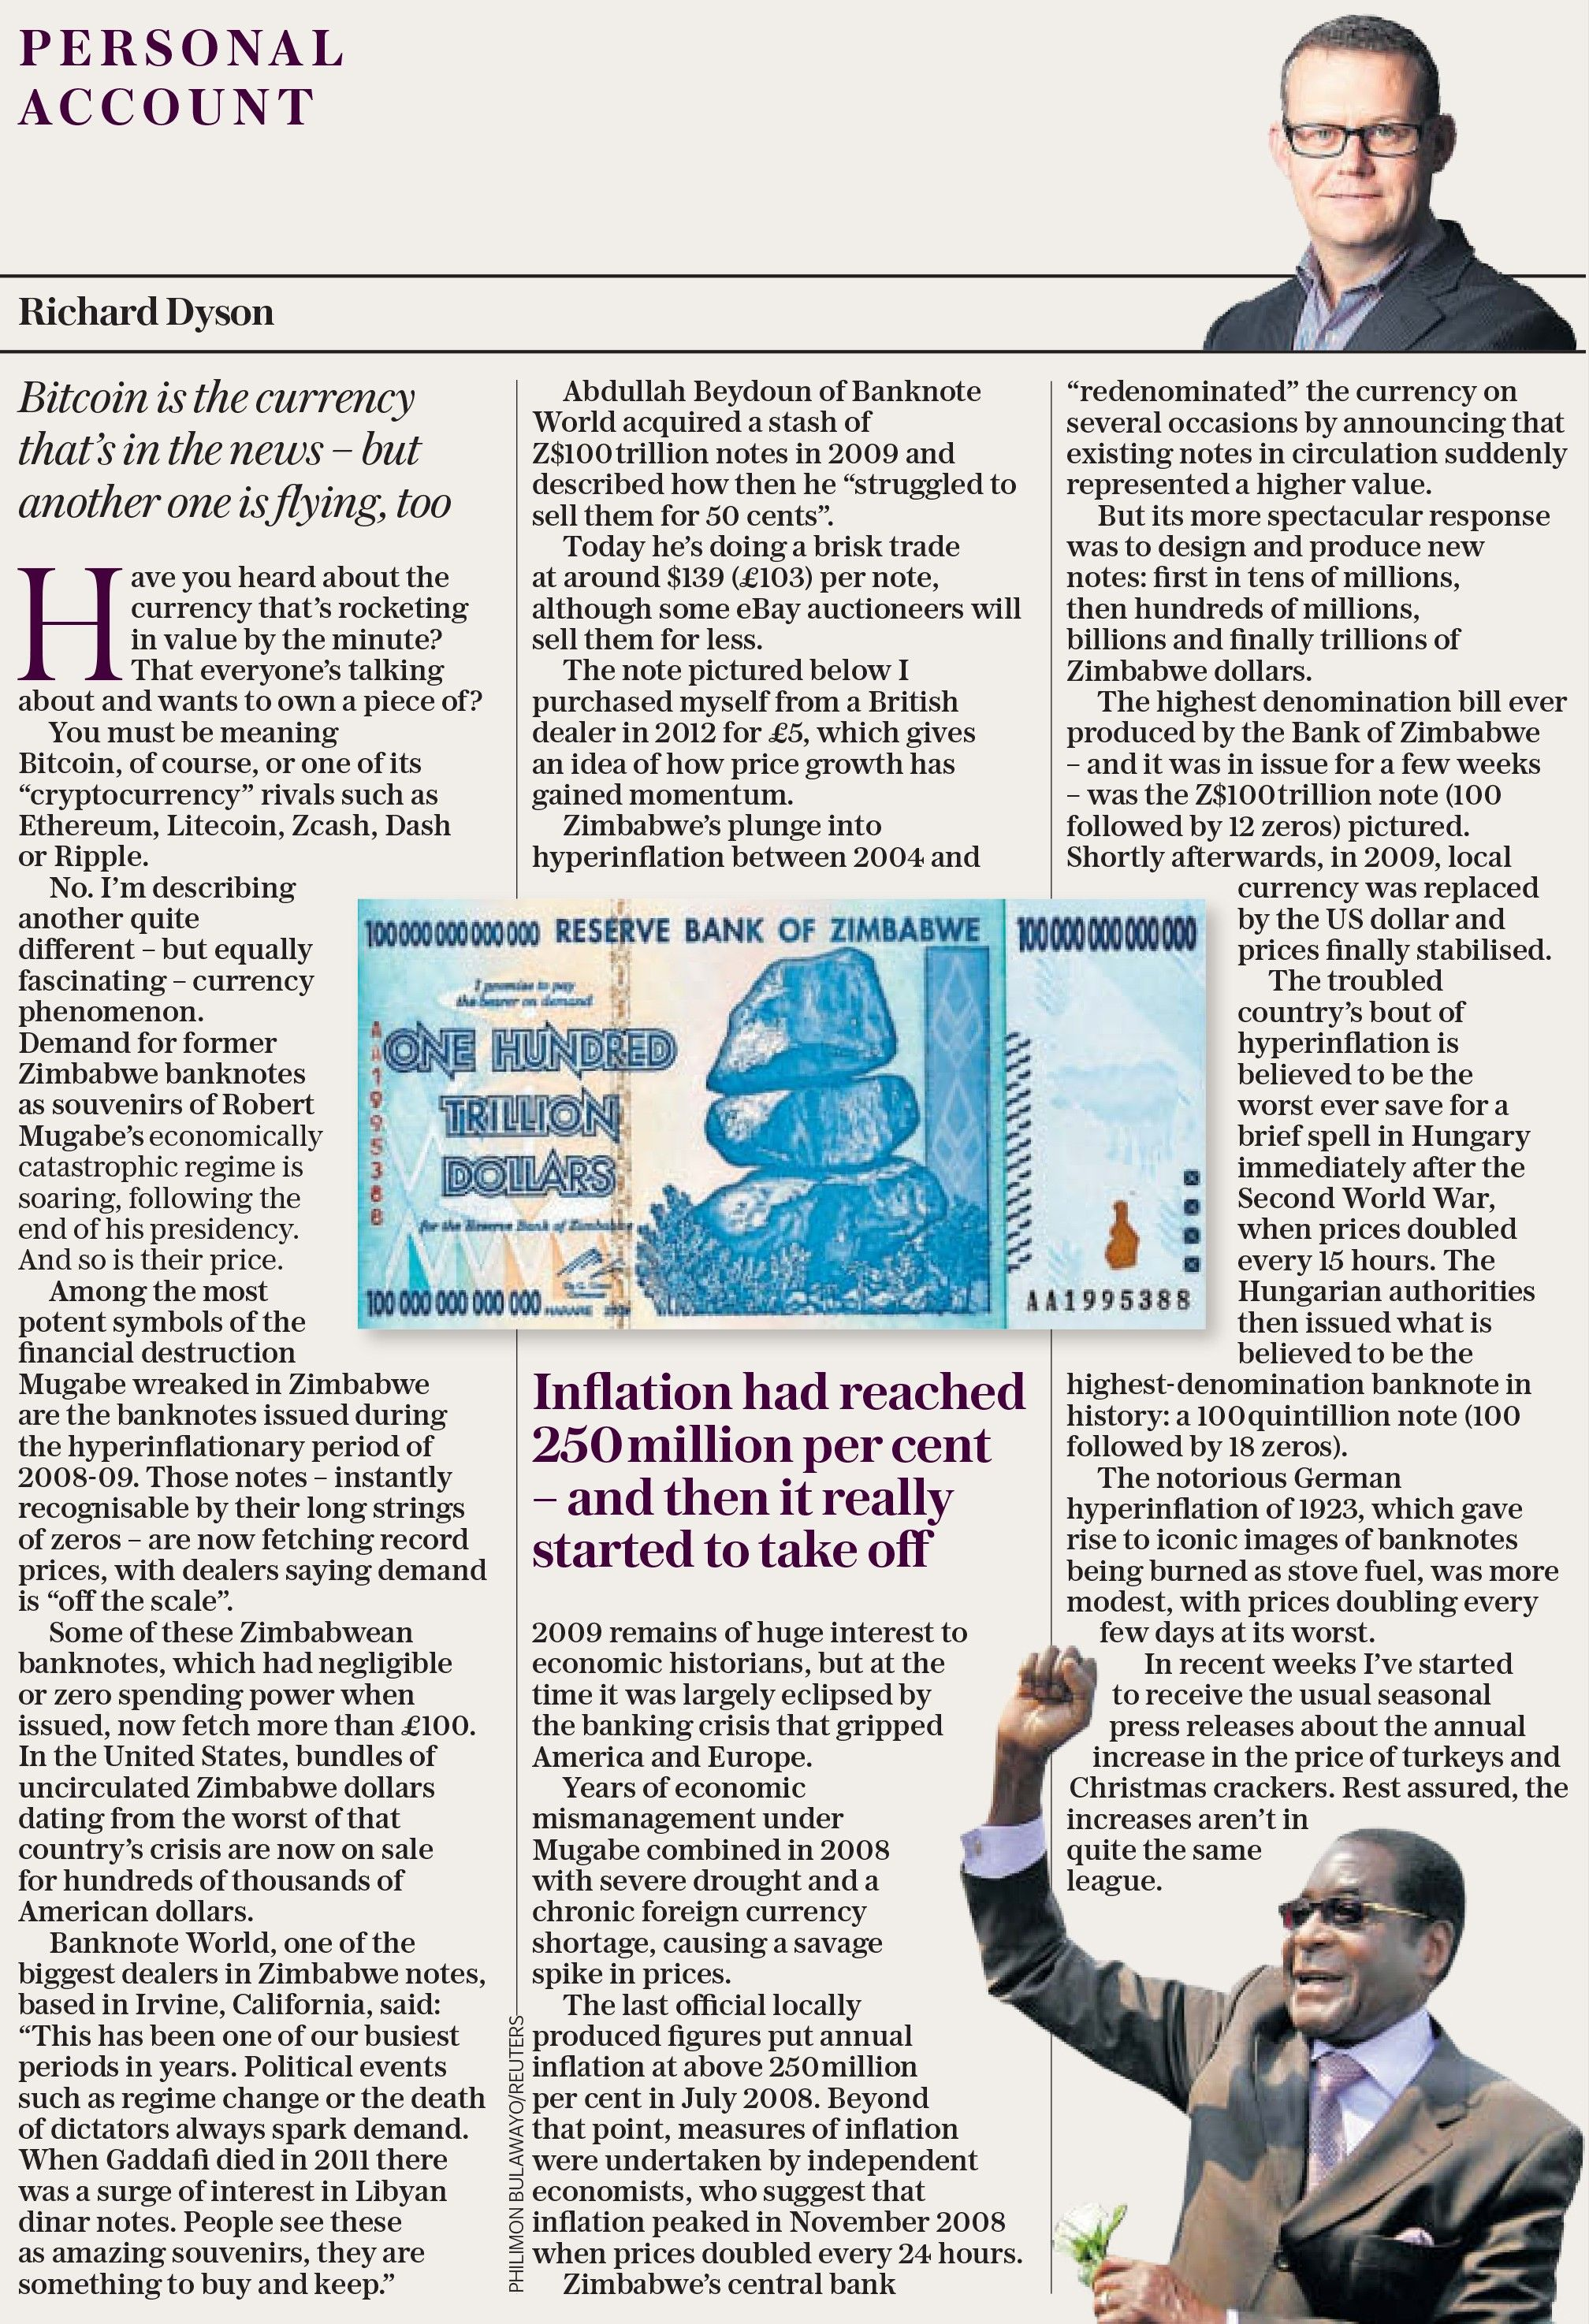 Banknote World featured on the telegraph